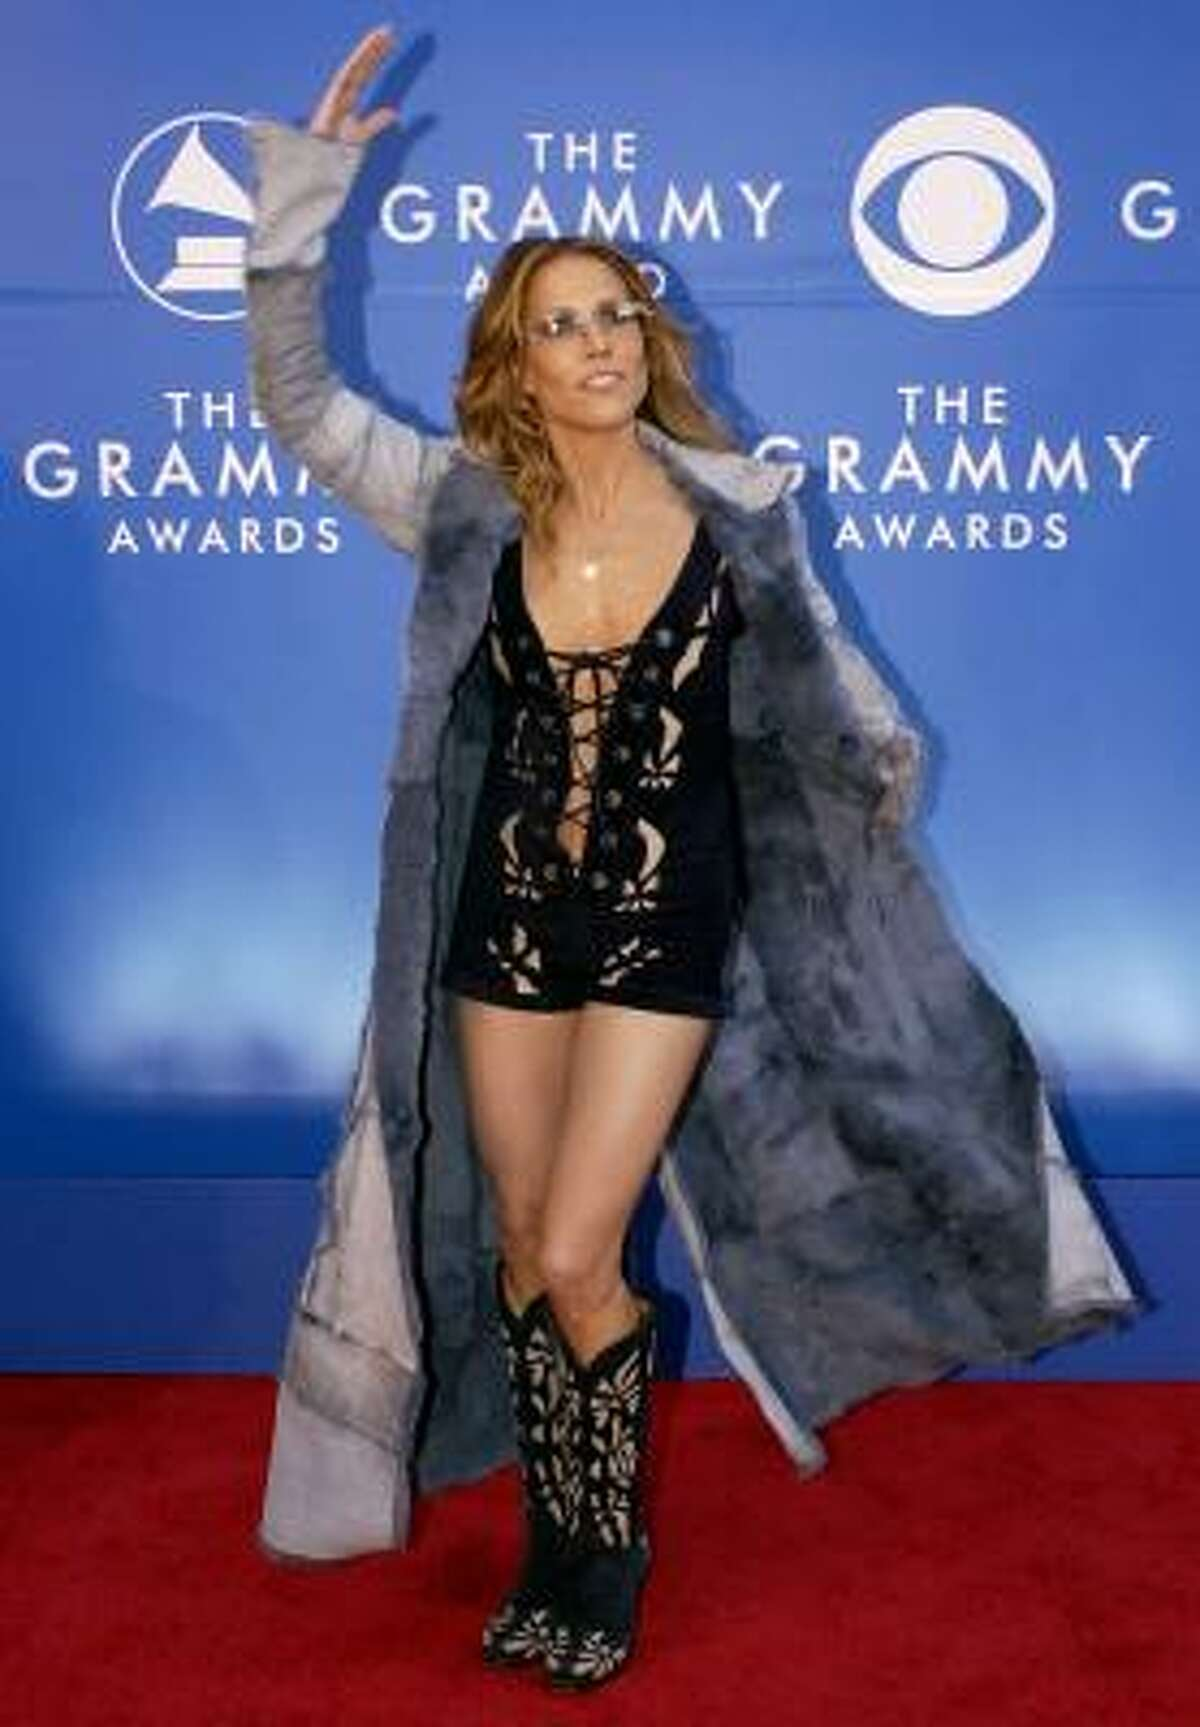 Sheryl Crow's outfit at the 2002 Grammy Awards screams red carpet disaster. Take a look at other celebrities who took fashion risks and failed miserably.